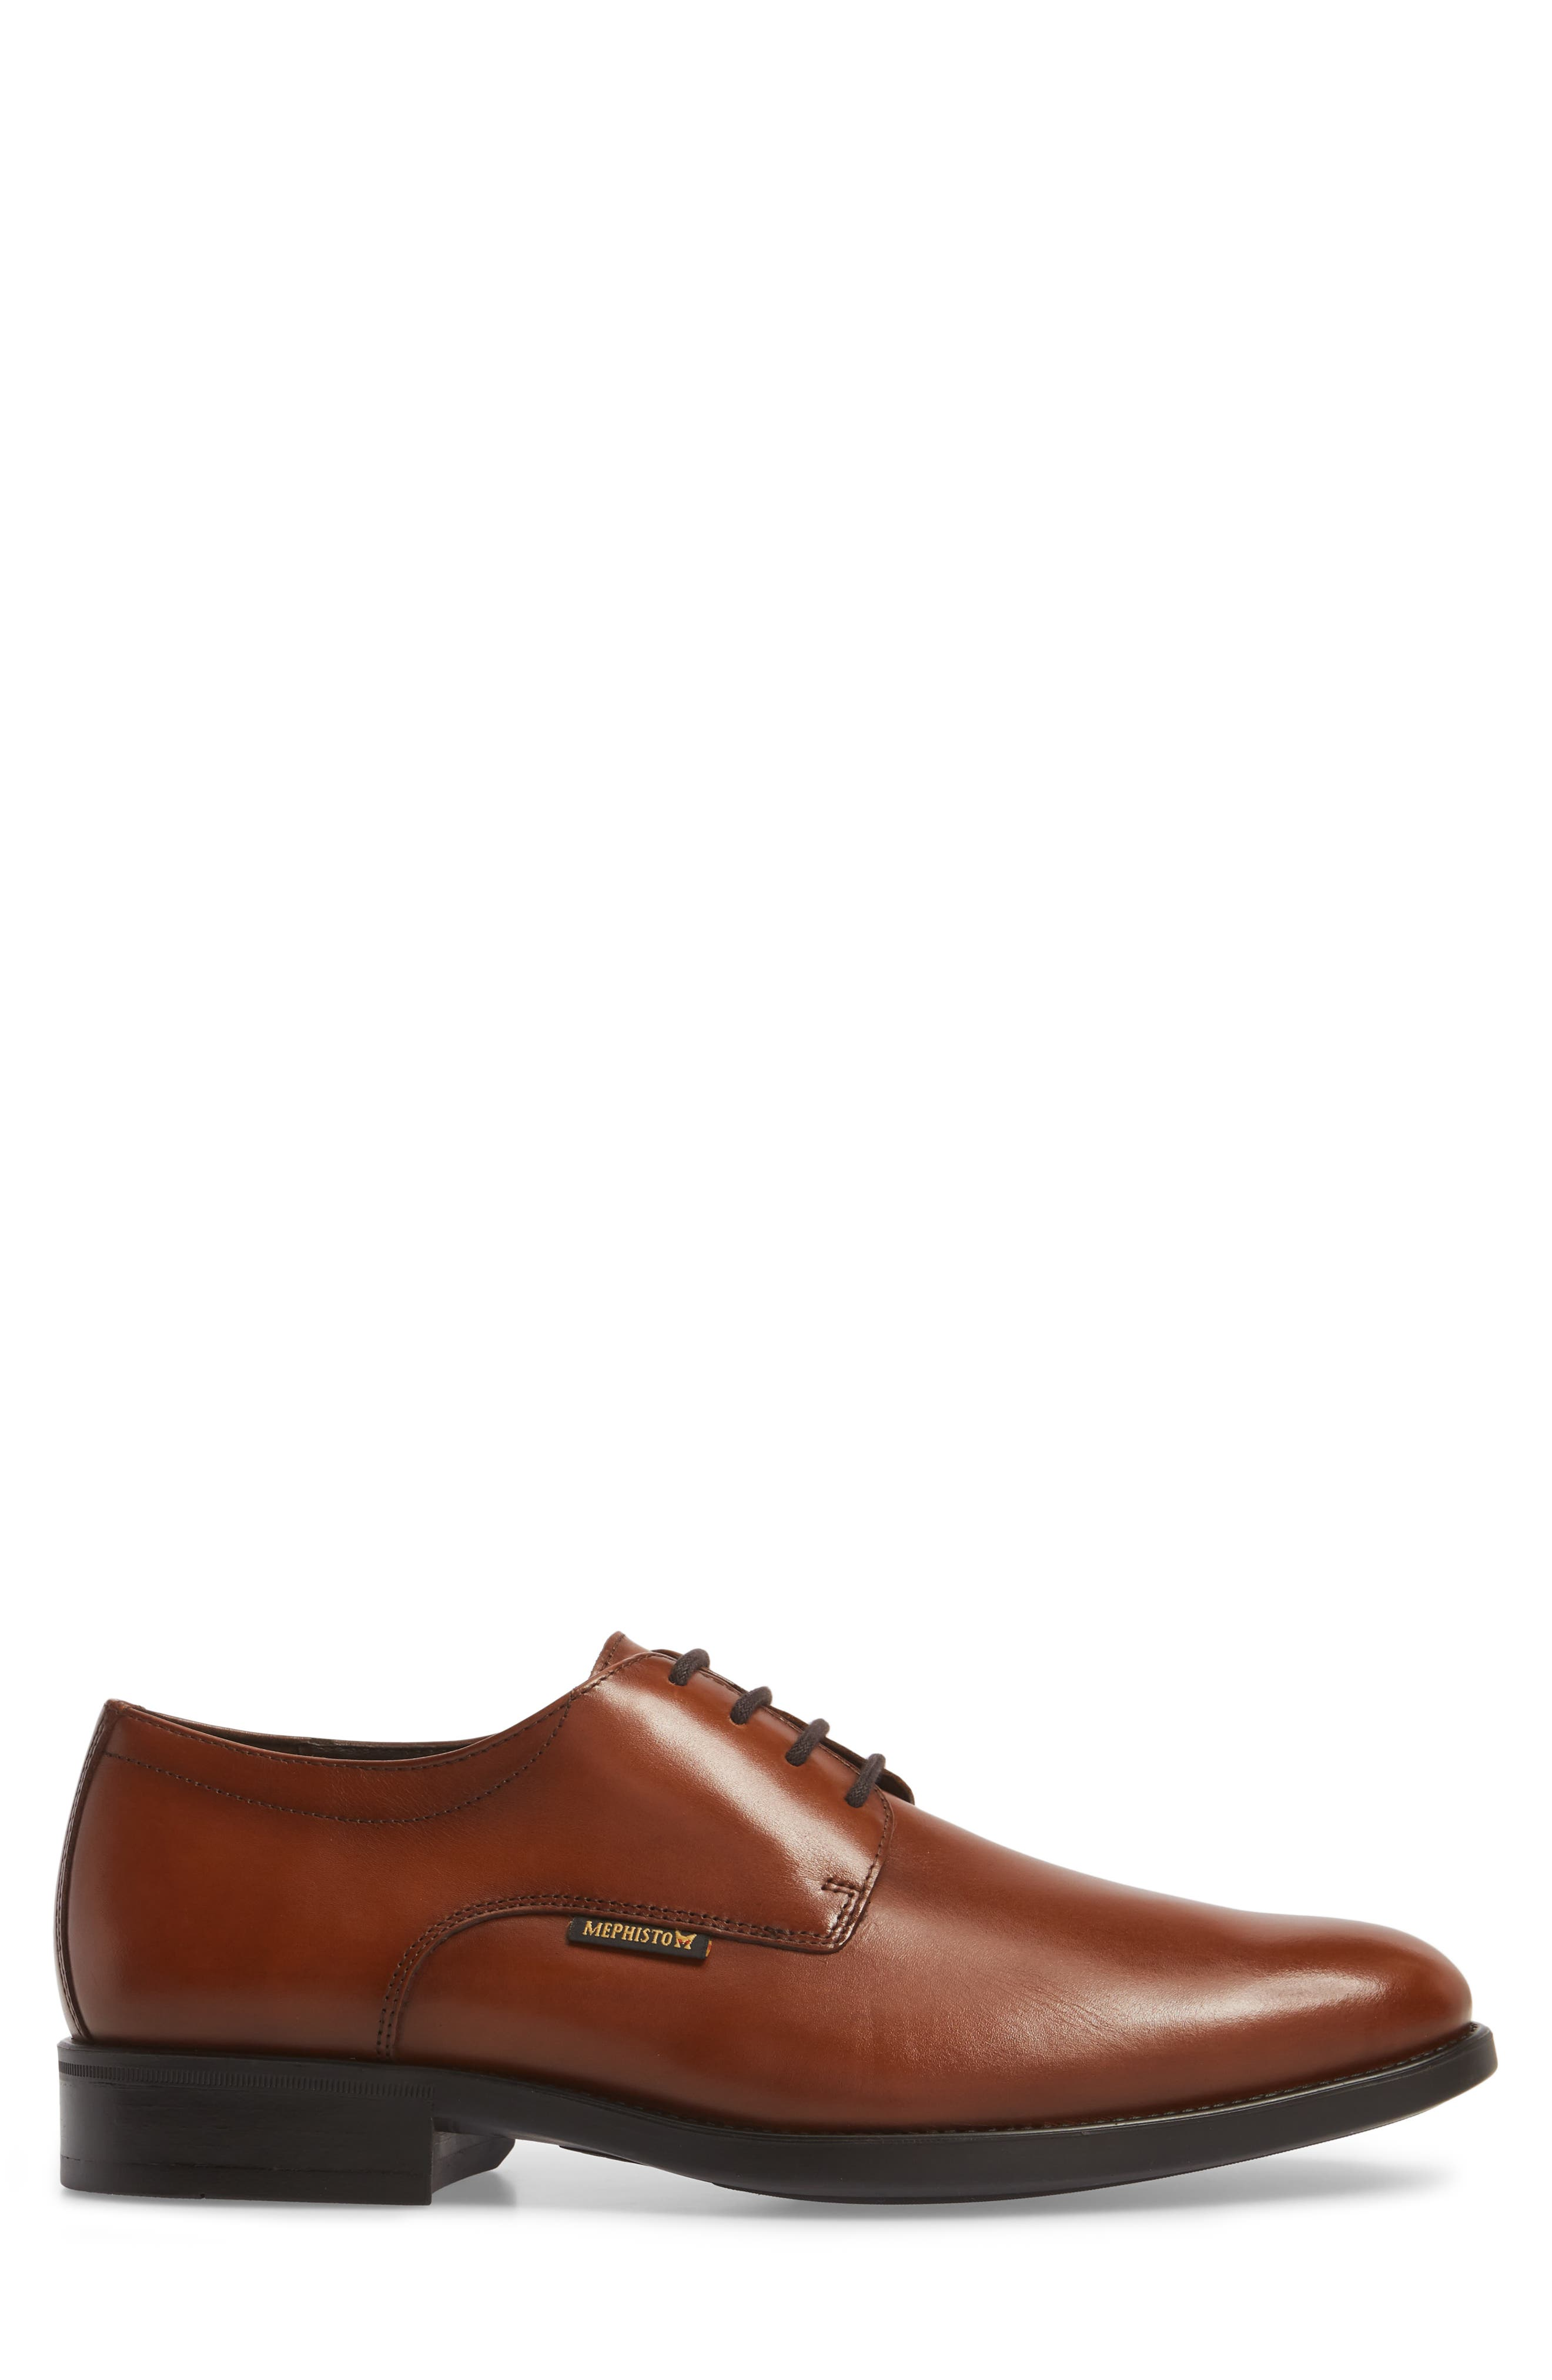 'Cooper' Plain Toe Derby,                             Alternate thumbnail 3, color,                             CHESTNUT LEATHER